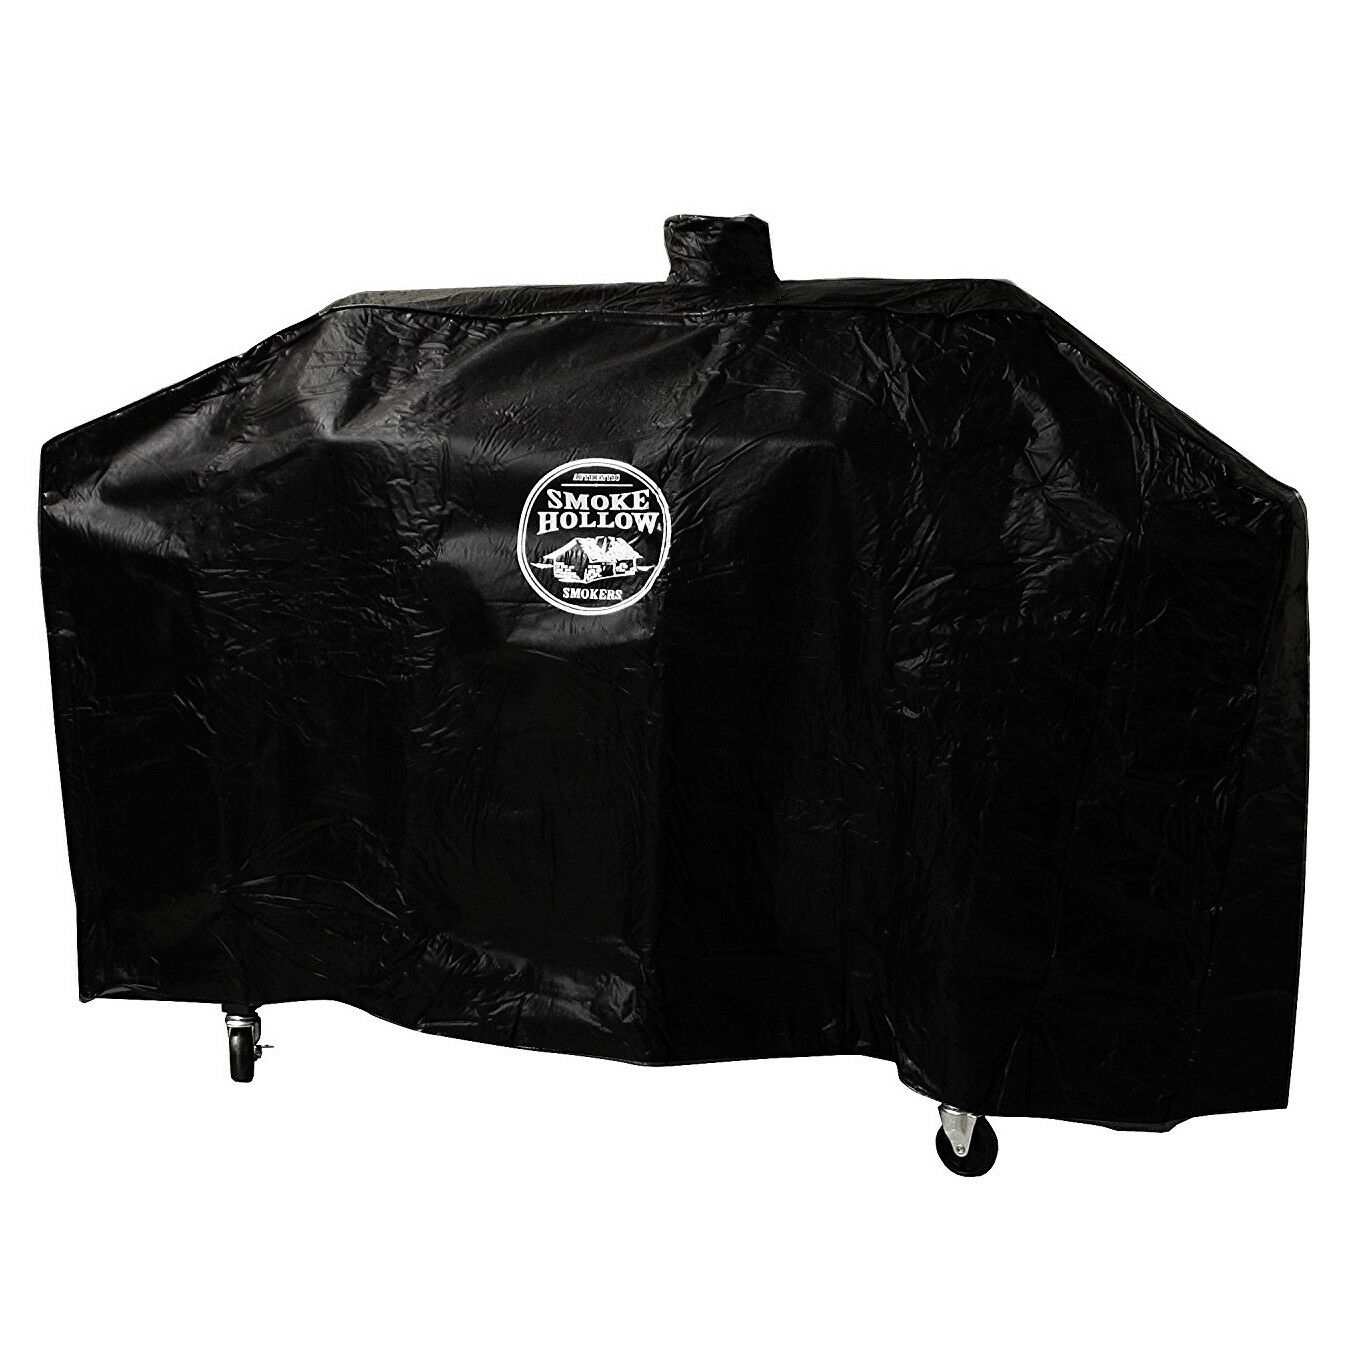 Camco Olympian Grill Storage Bag Heavy Duty Weather Resistant Material Fits Al For Sale Online Ebay